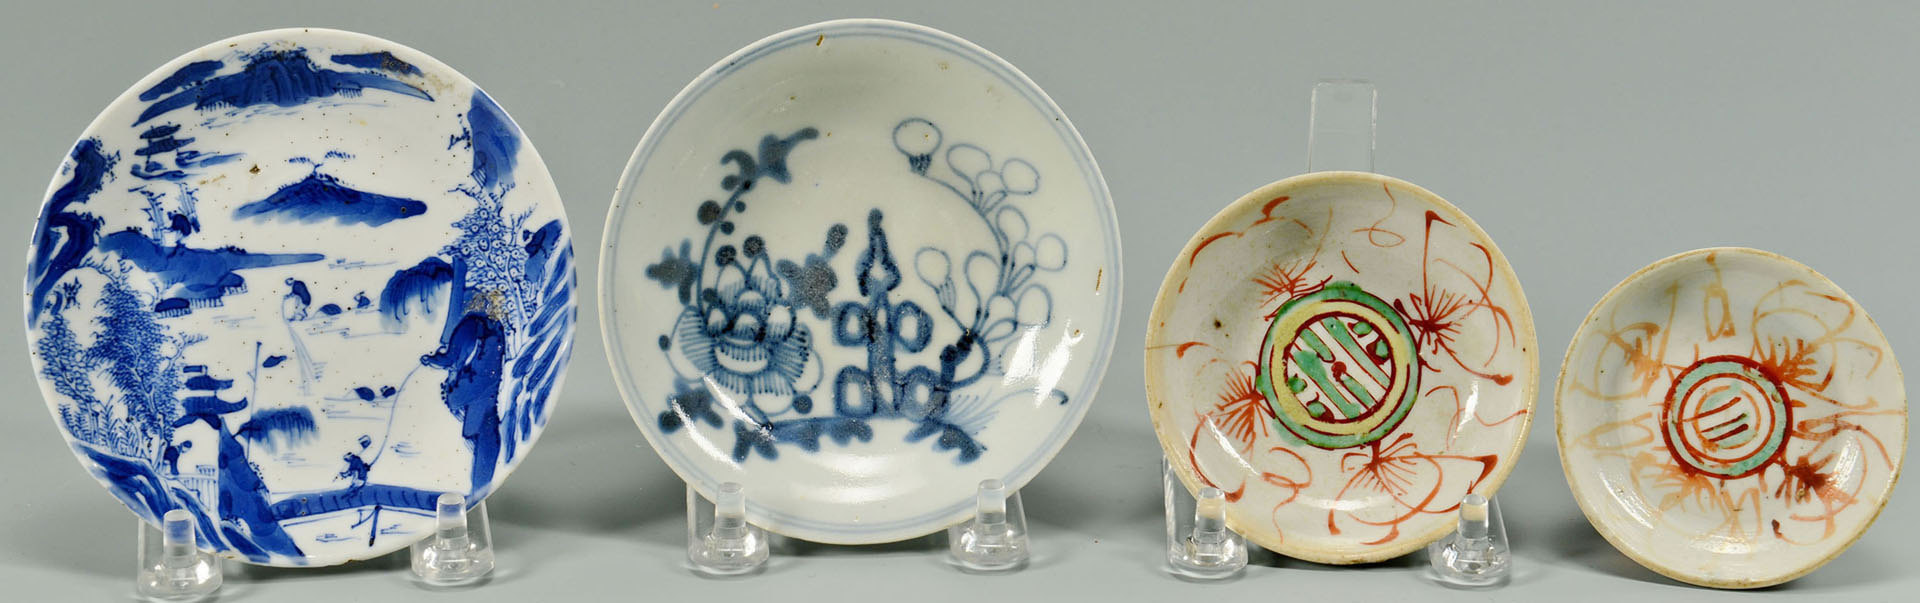 Lot 457: 2 Large Groupings of Chinese Porcelain